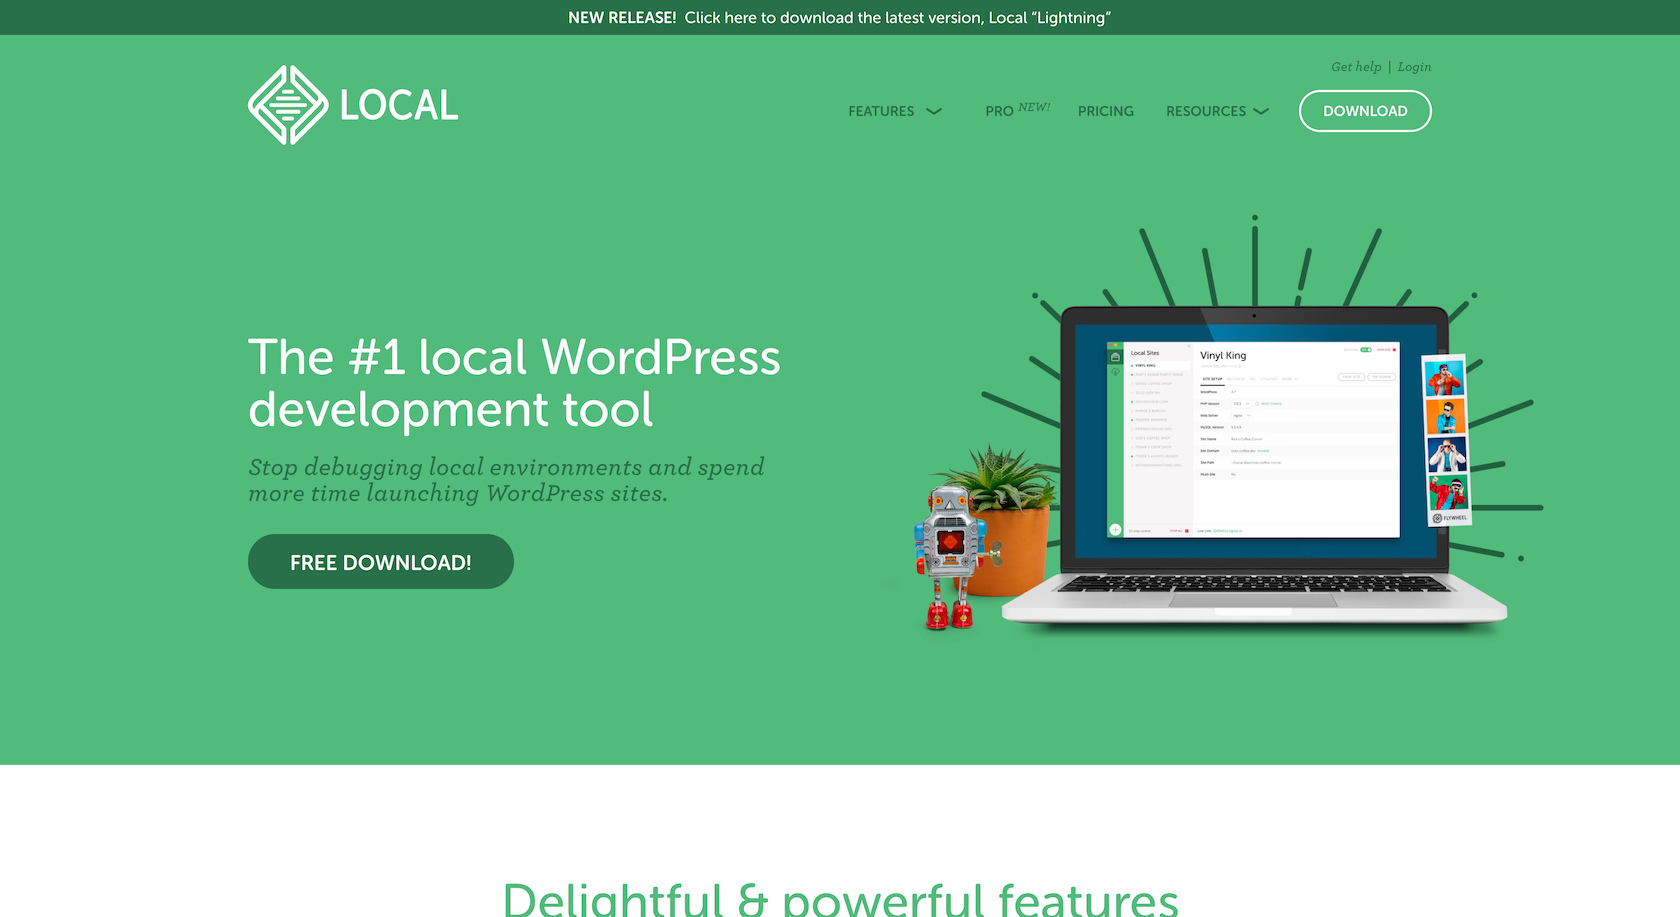 FireShot Capture 307 - Local - Local WordPress development made simple - localwp.com.png